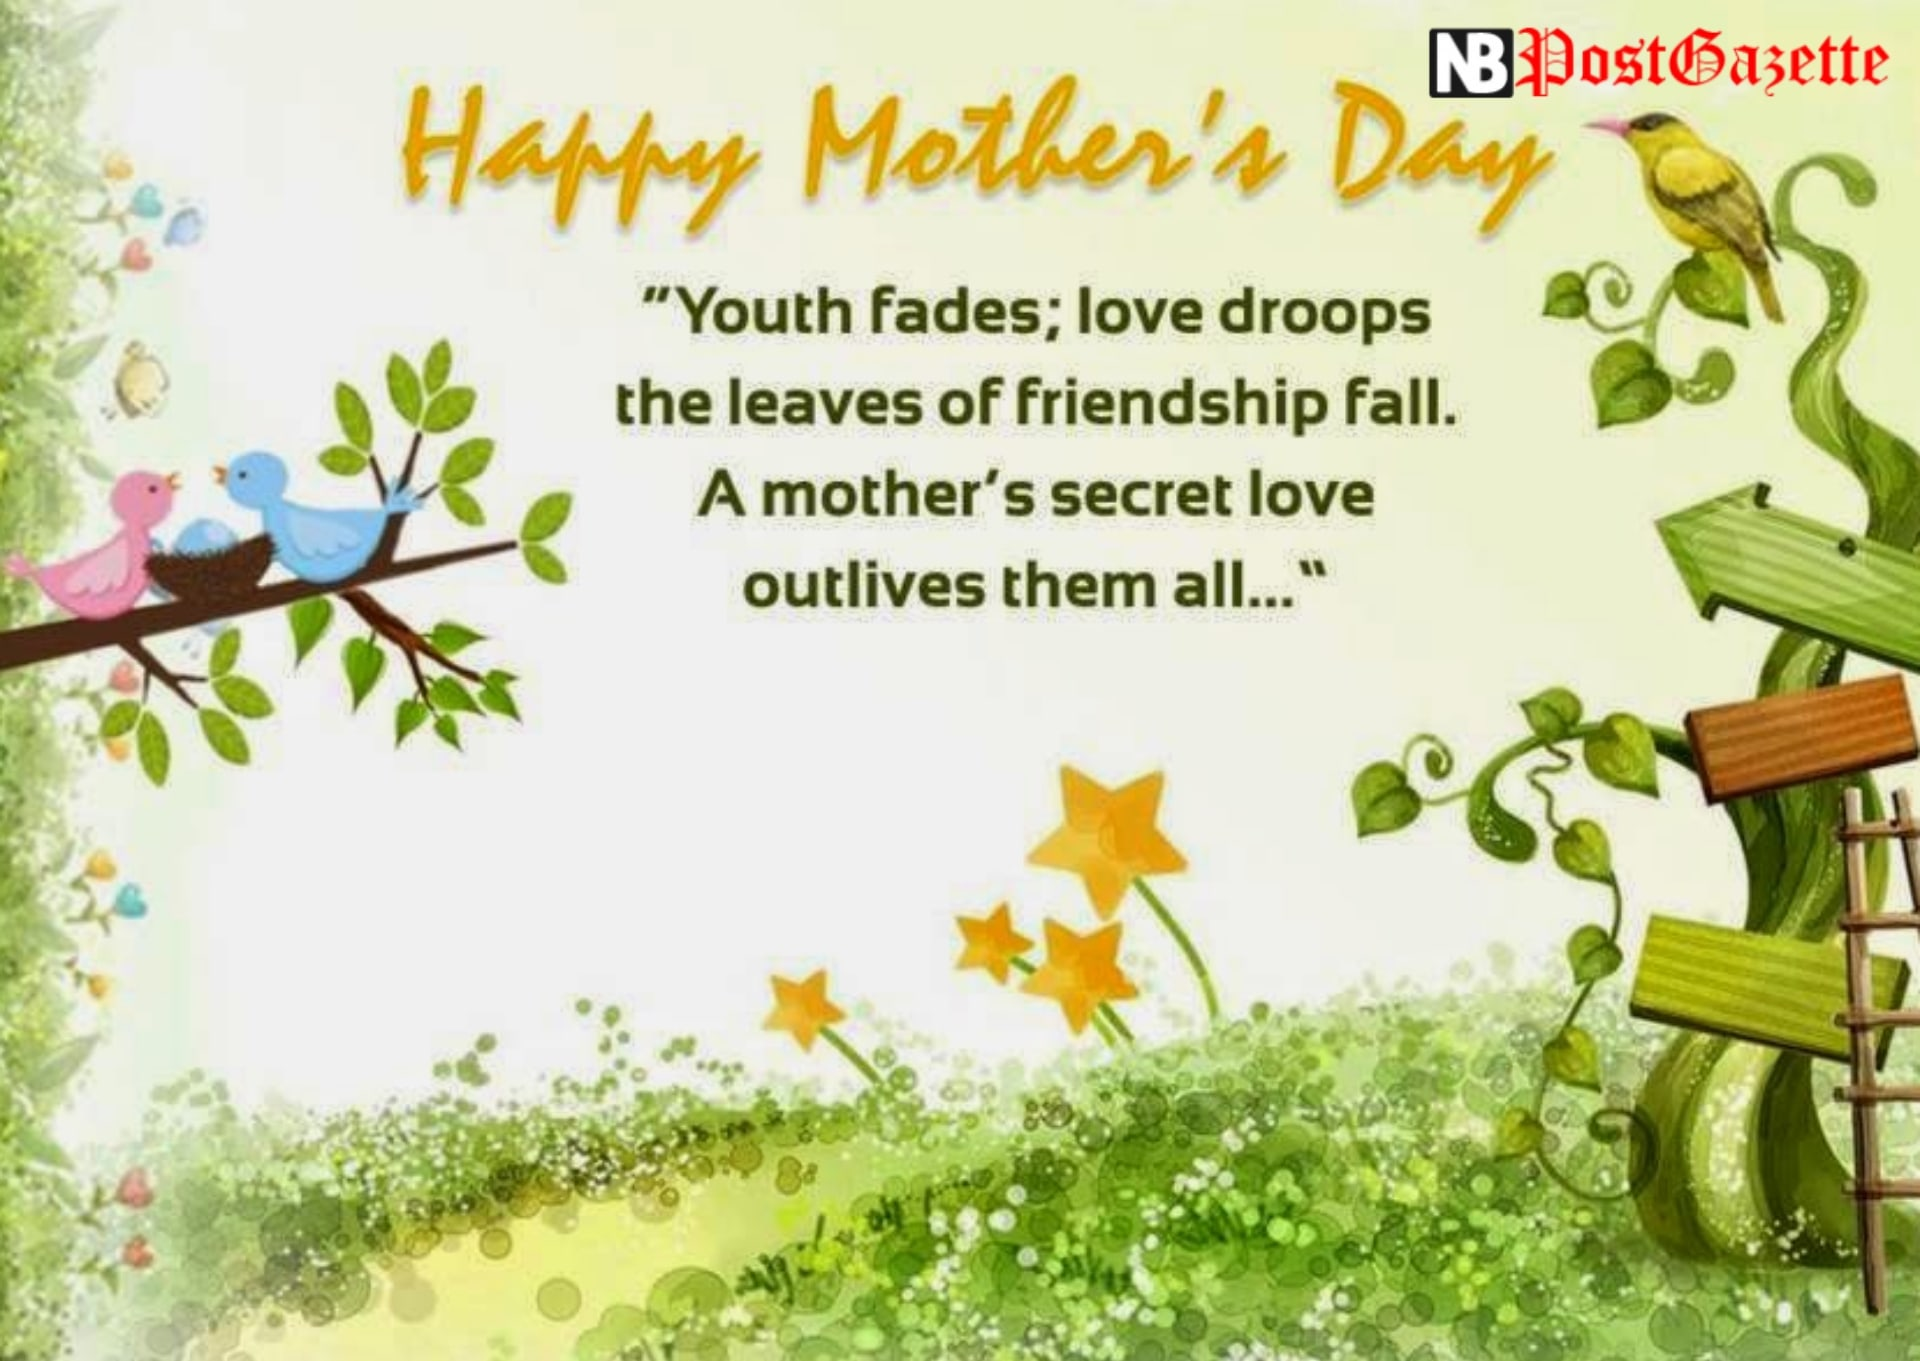 Mothers Day 2019: WhatsApp/Facebook Status, Messages, Quotes, SMS,